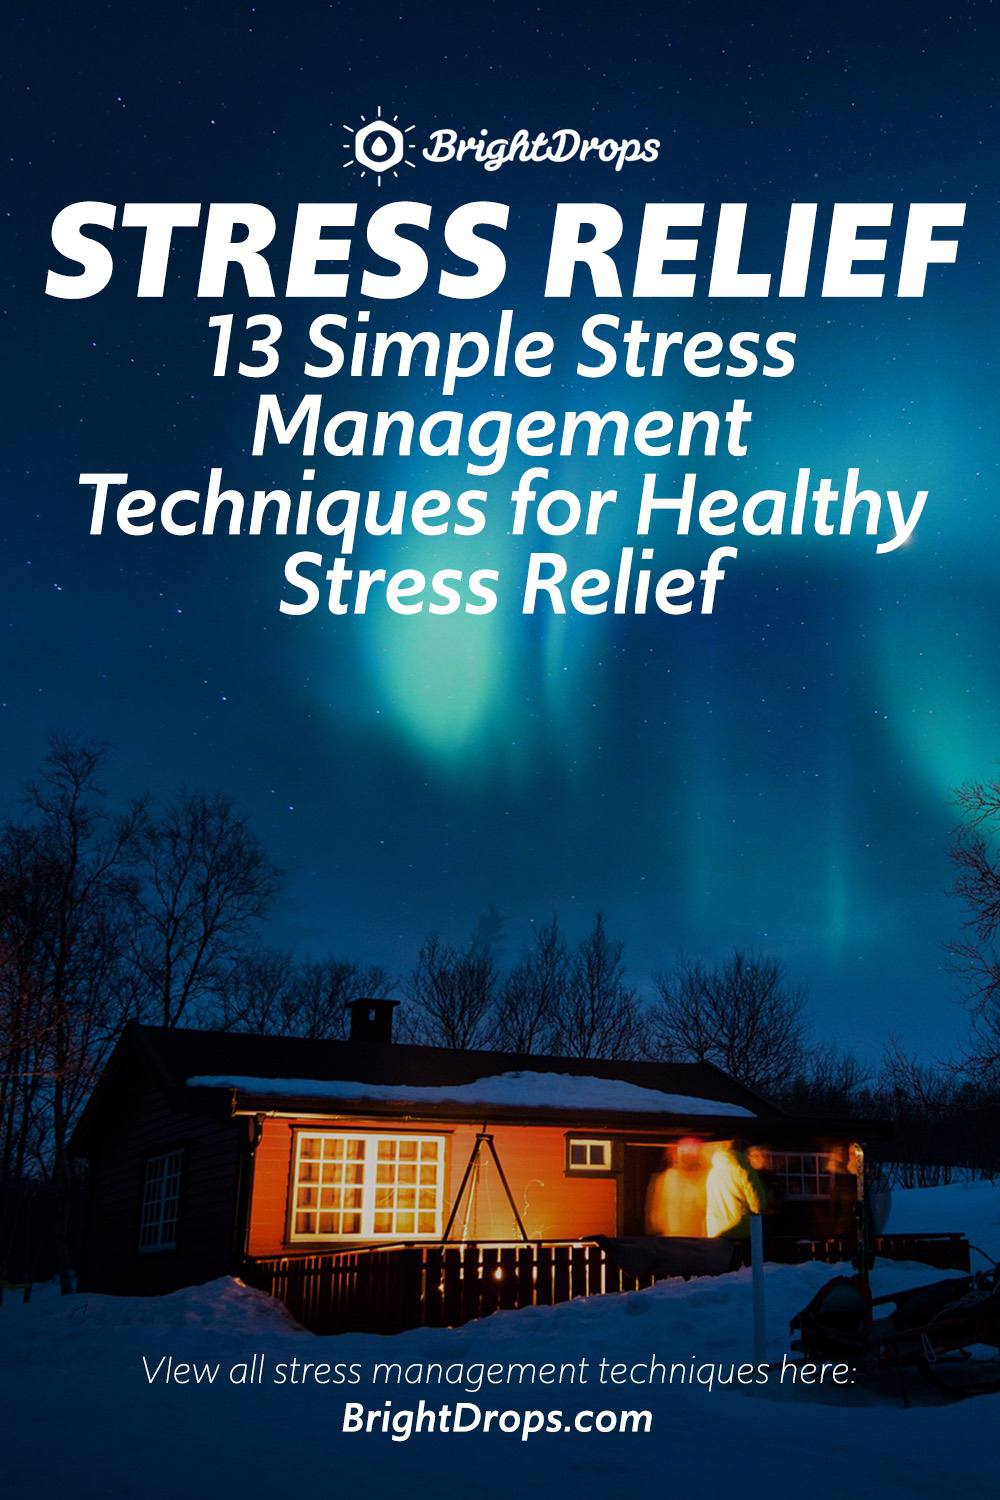 13 Simple Stress Management Techniques for Healthy Stress Relief